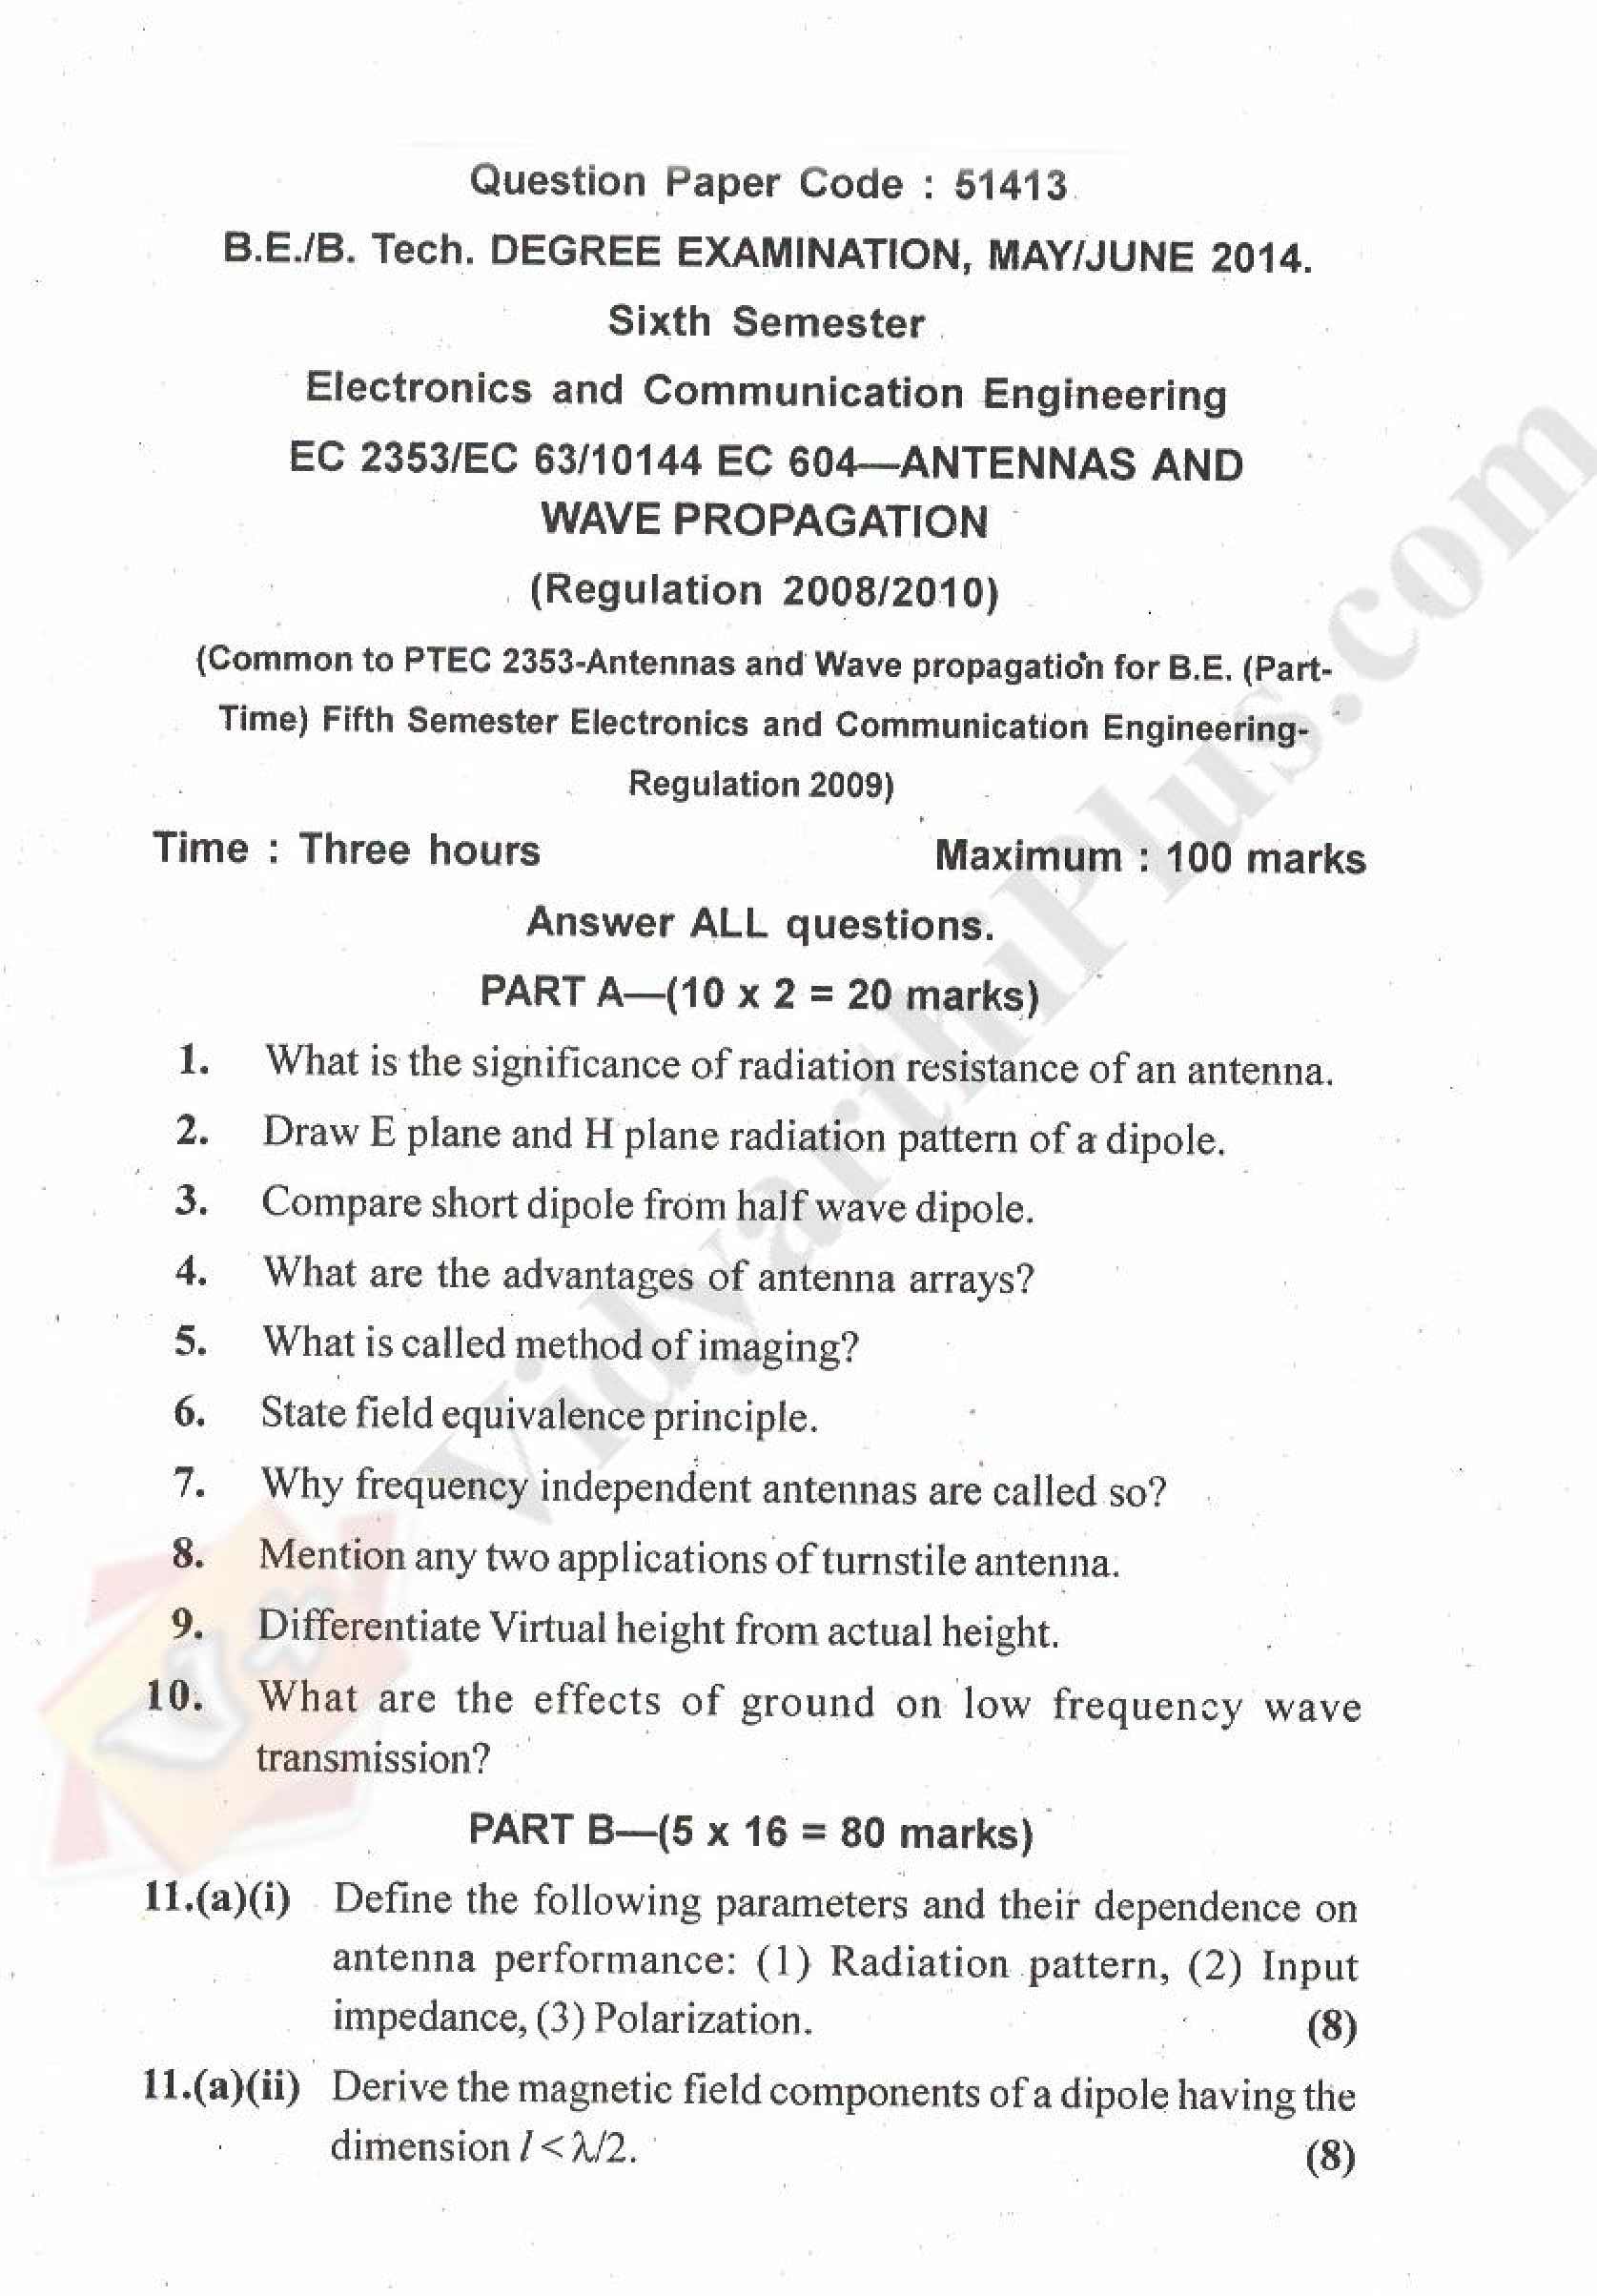 Antennas And wave Propagation Solved Question Papers - 2015 Edition